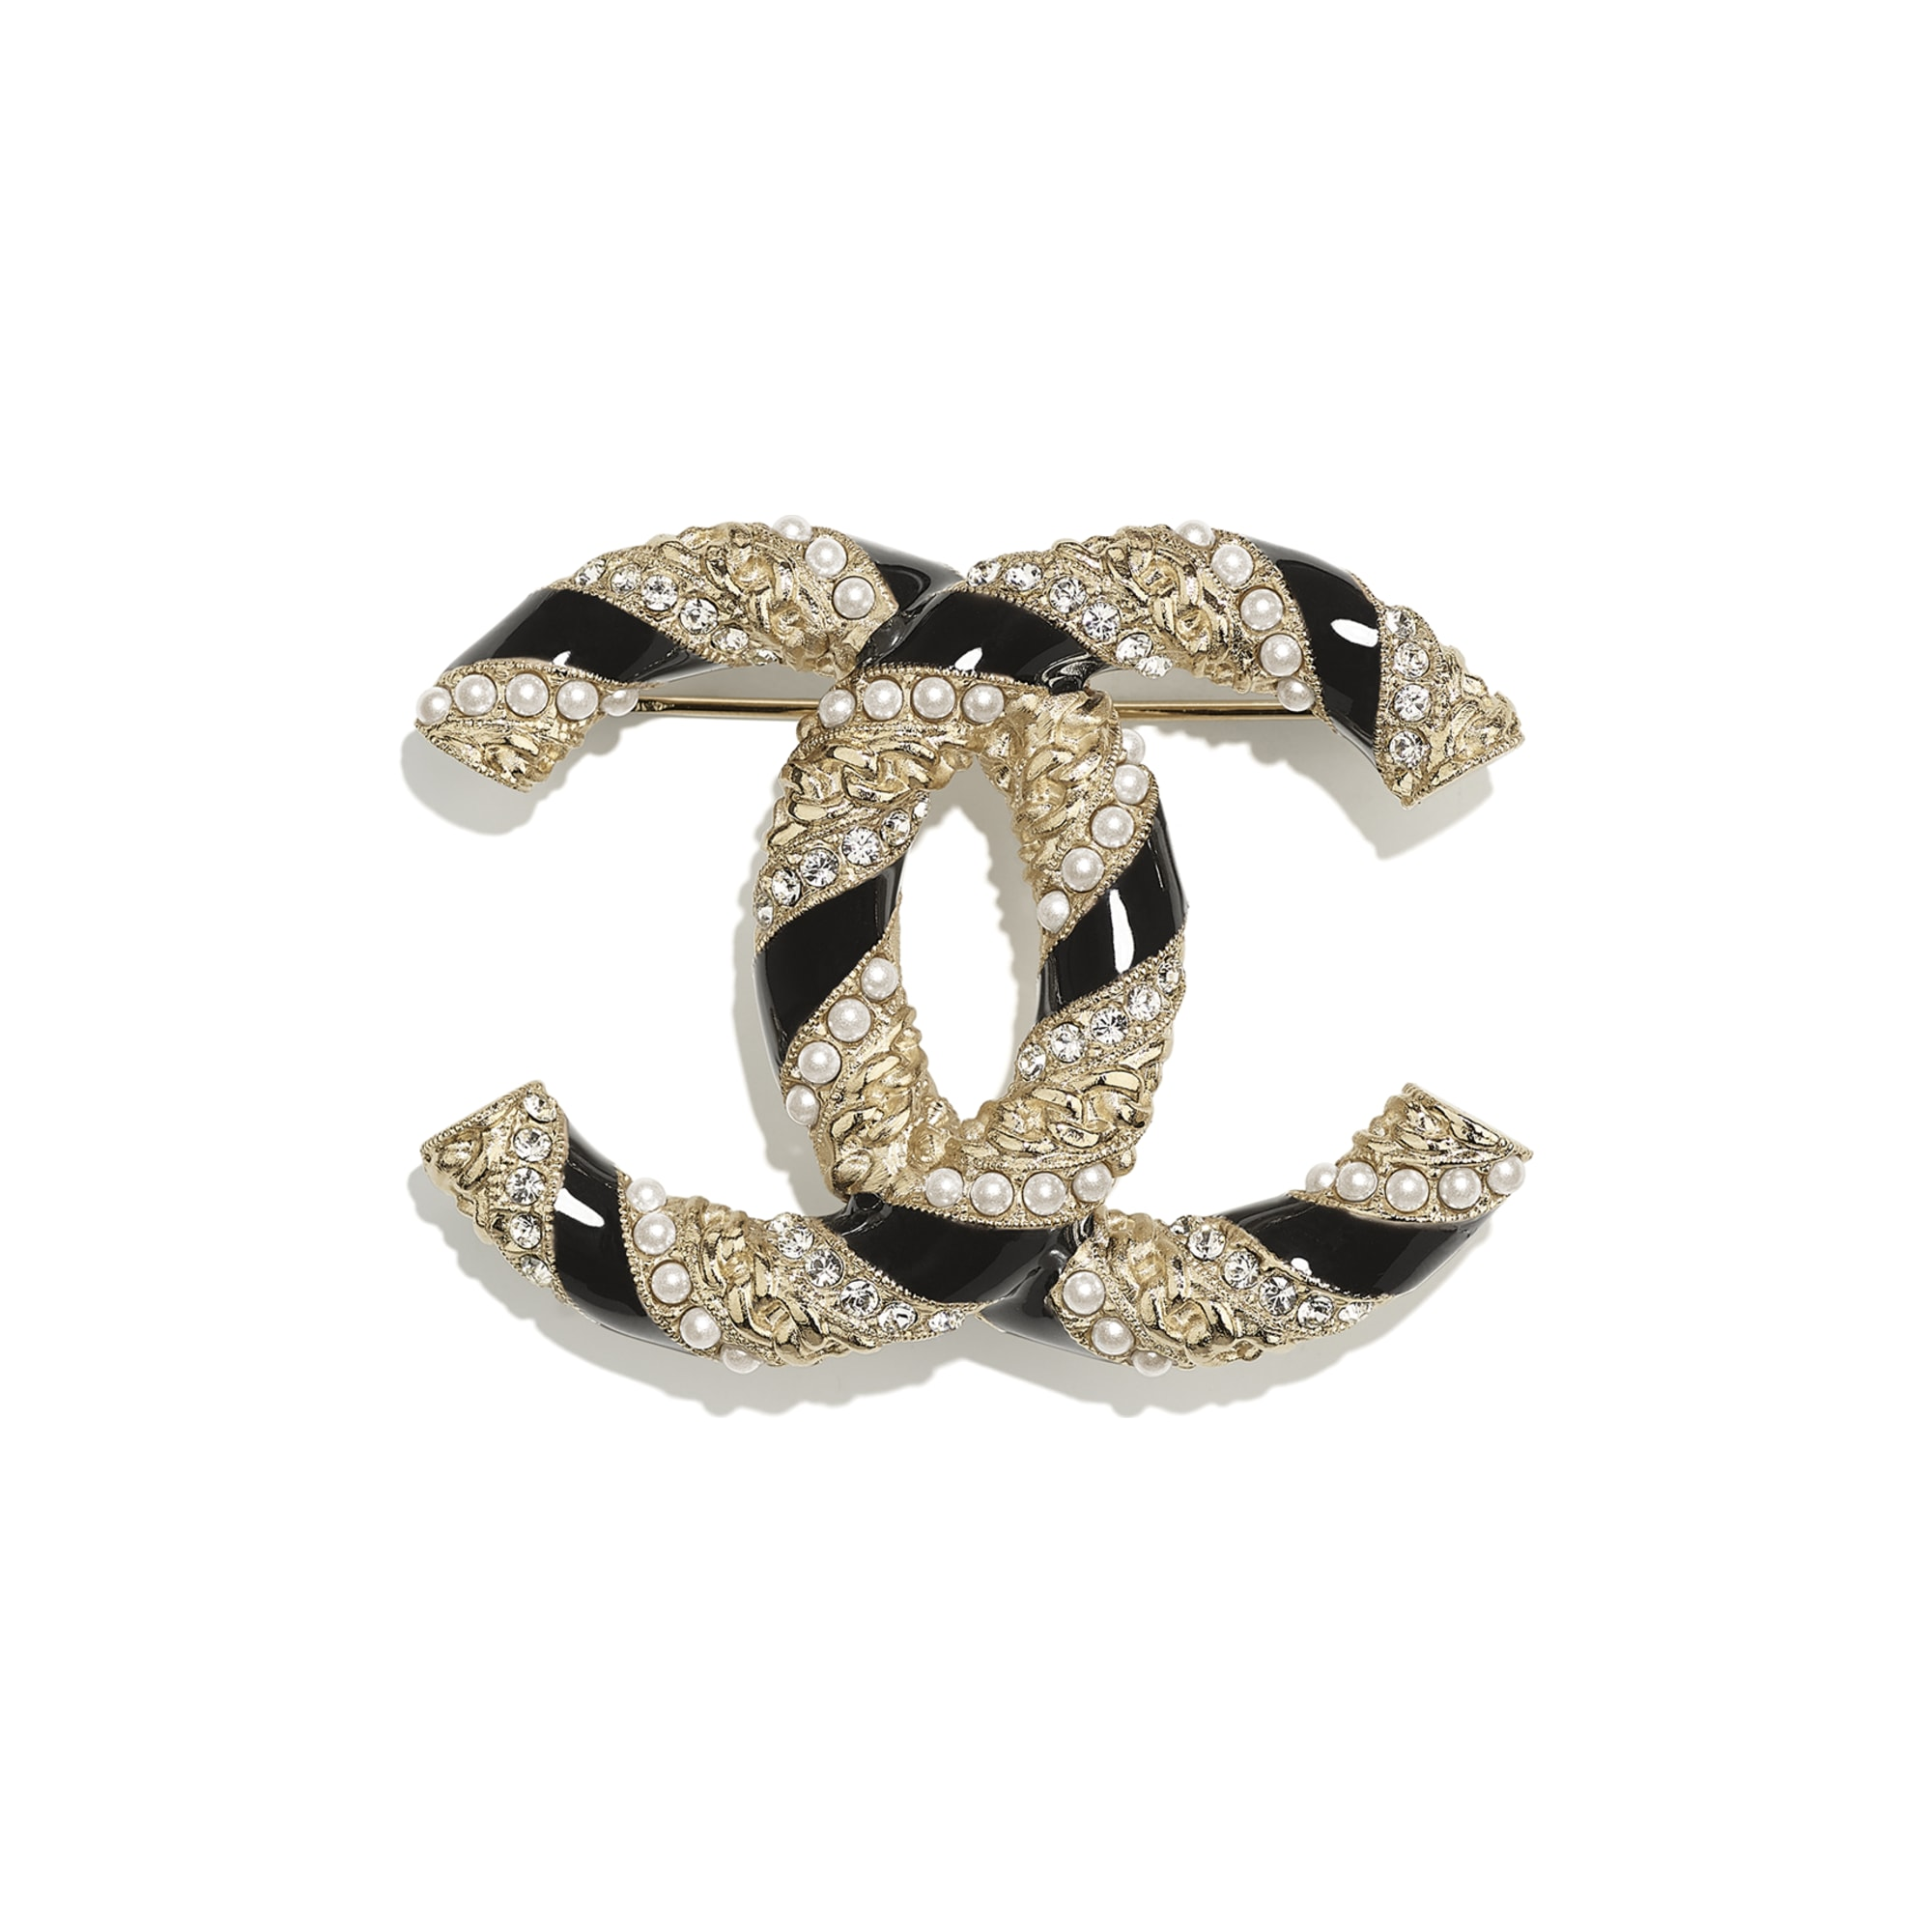 Brooch - Gold, Pearly White, Black & Crystal - Metal, Glass Pearls & Diamantés - CHANEL - Default view - see standard sized version